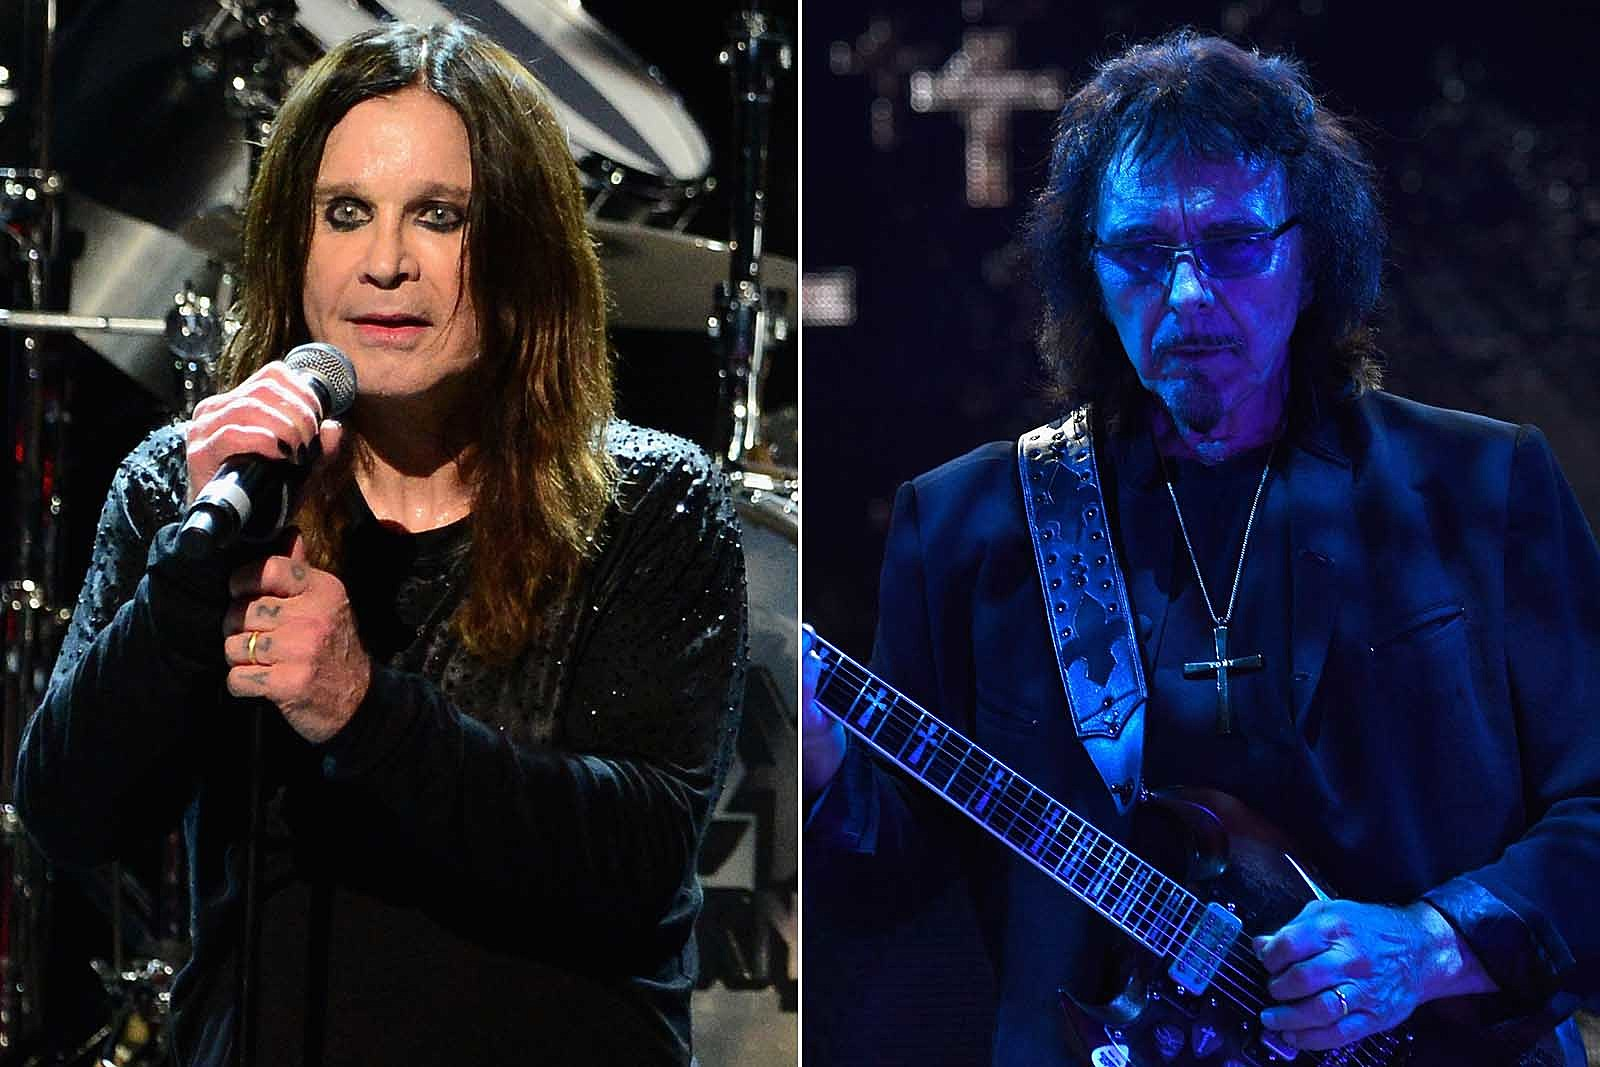 best dating ozzy osbourne quotes from songs